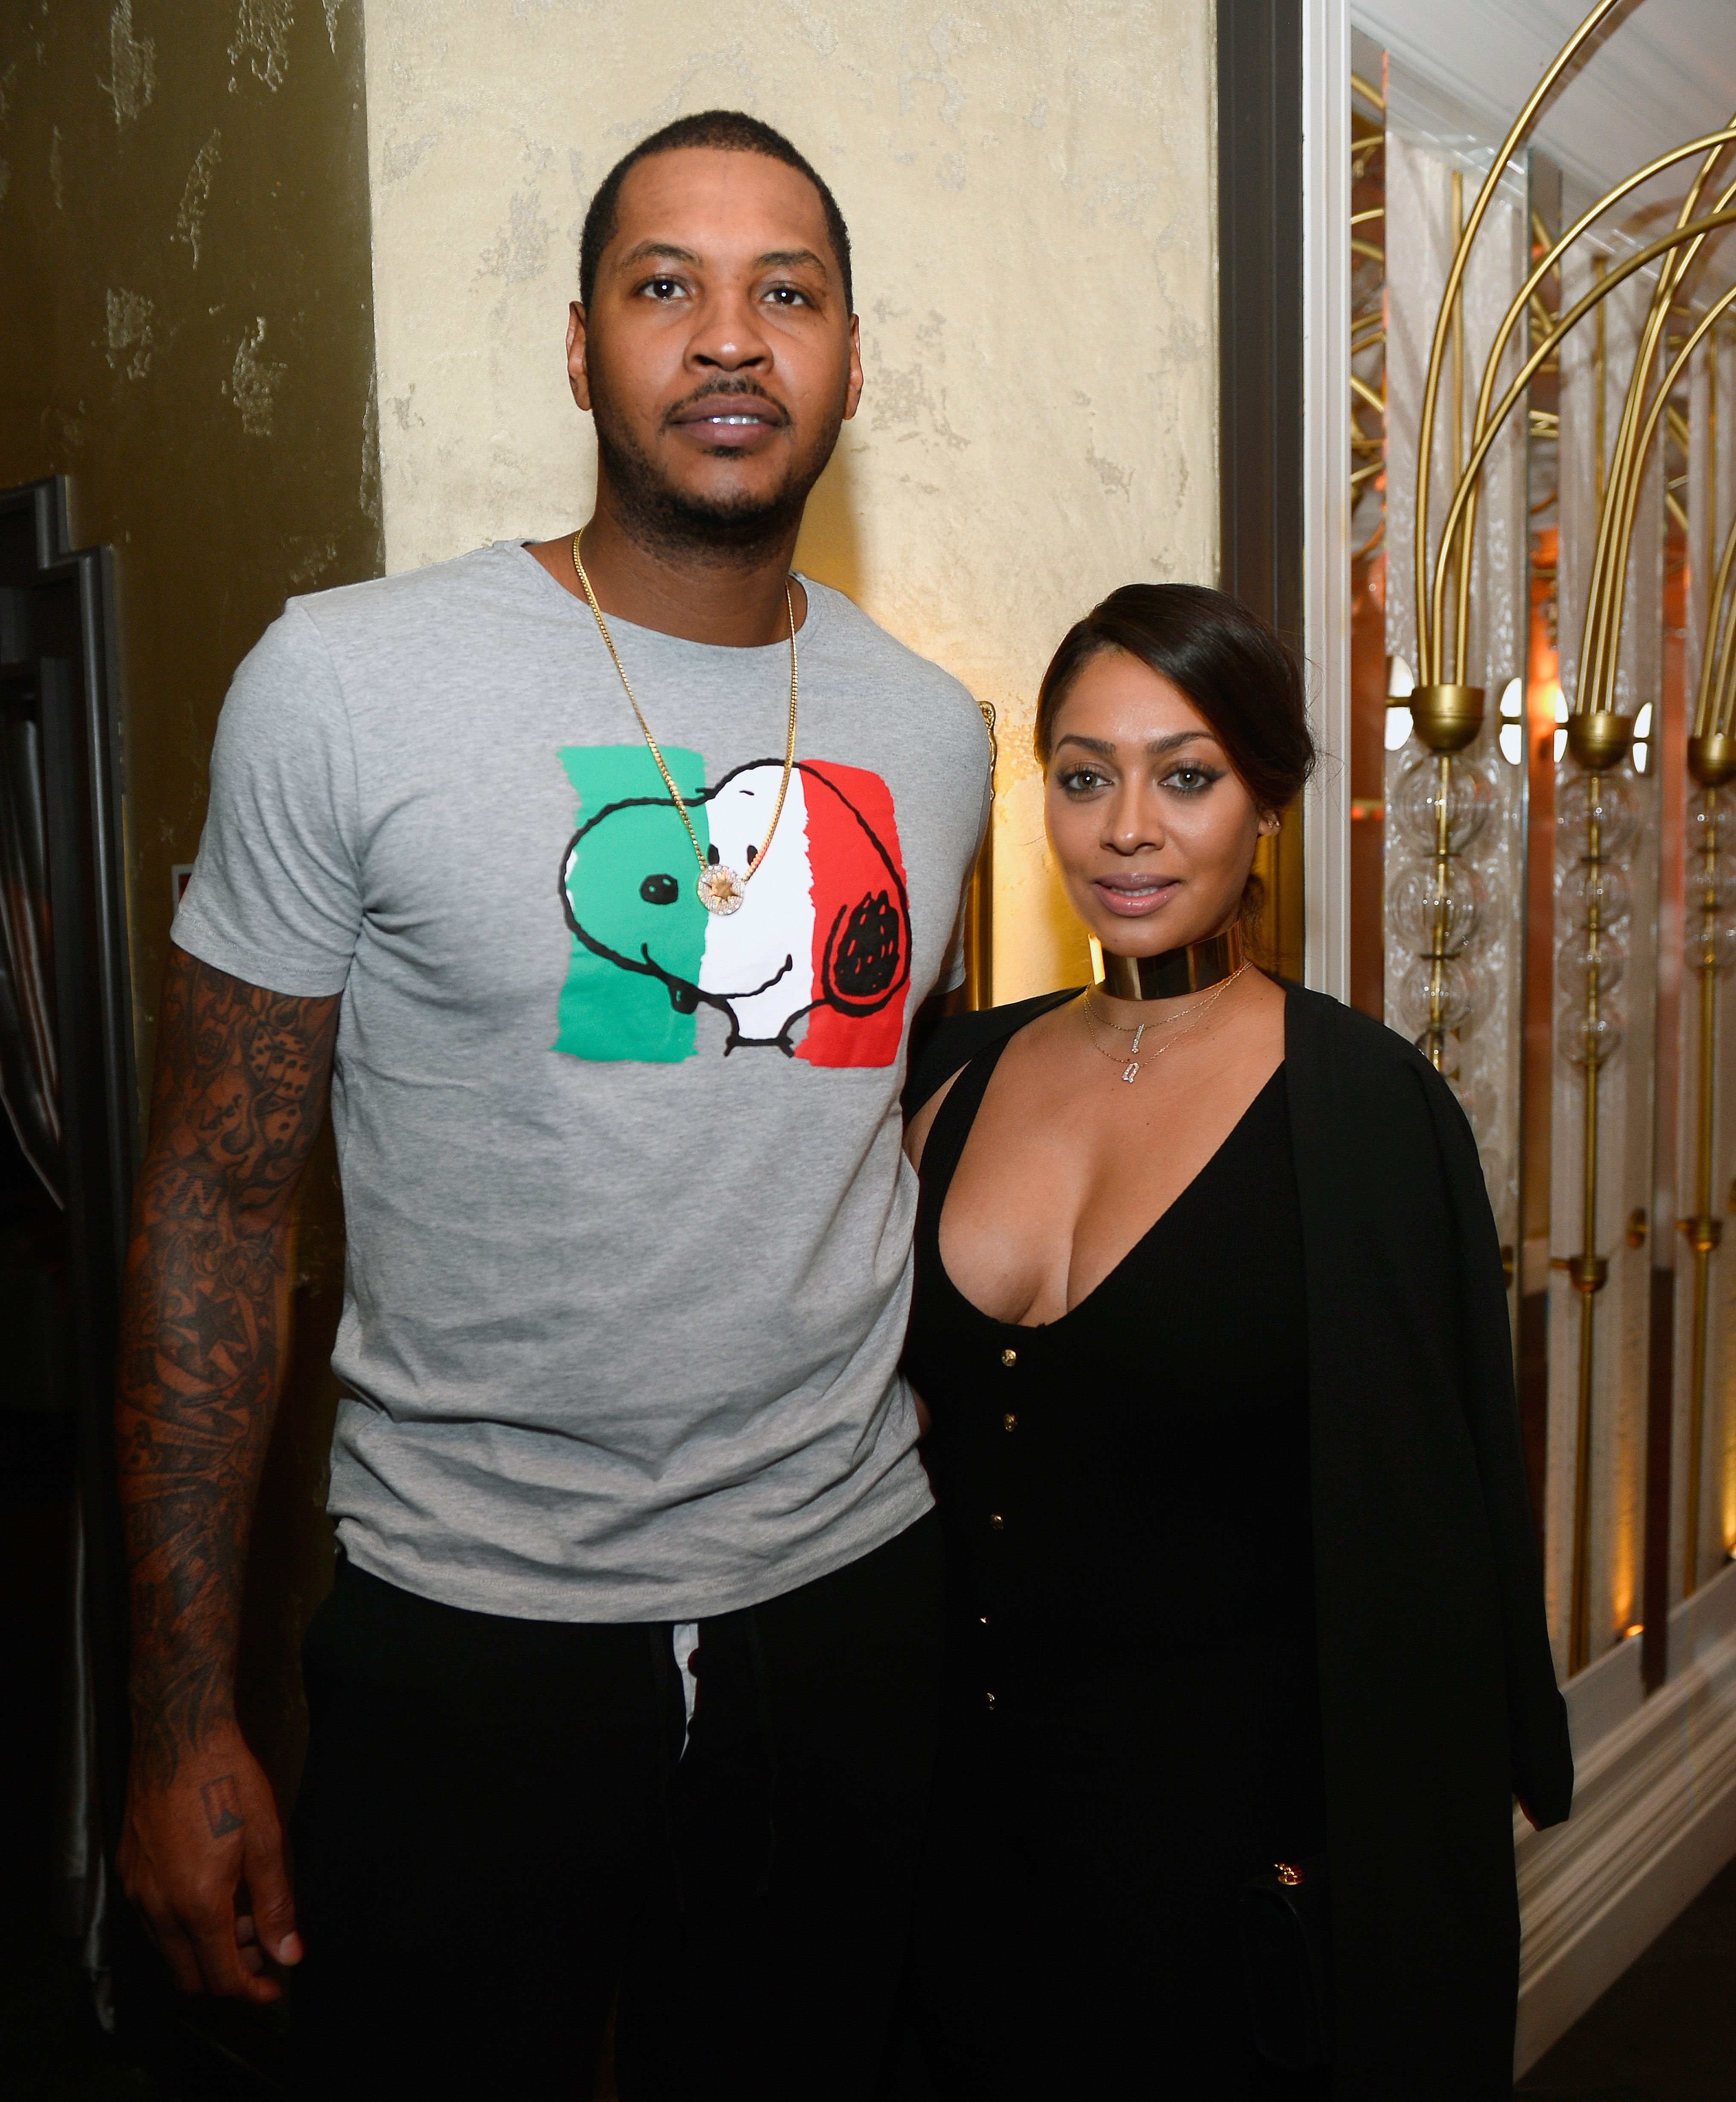 Carmelo Anthony and La La Anthony celebrate Team USA on July 22, 2016 in Las Vegas.   Photo: Getty Images